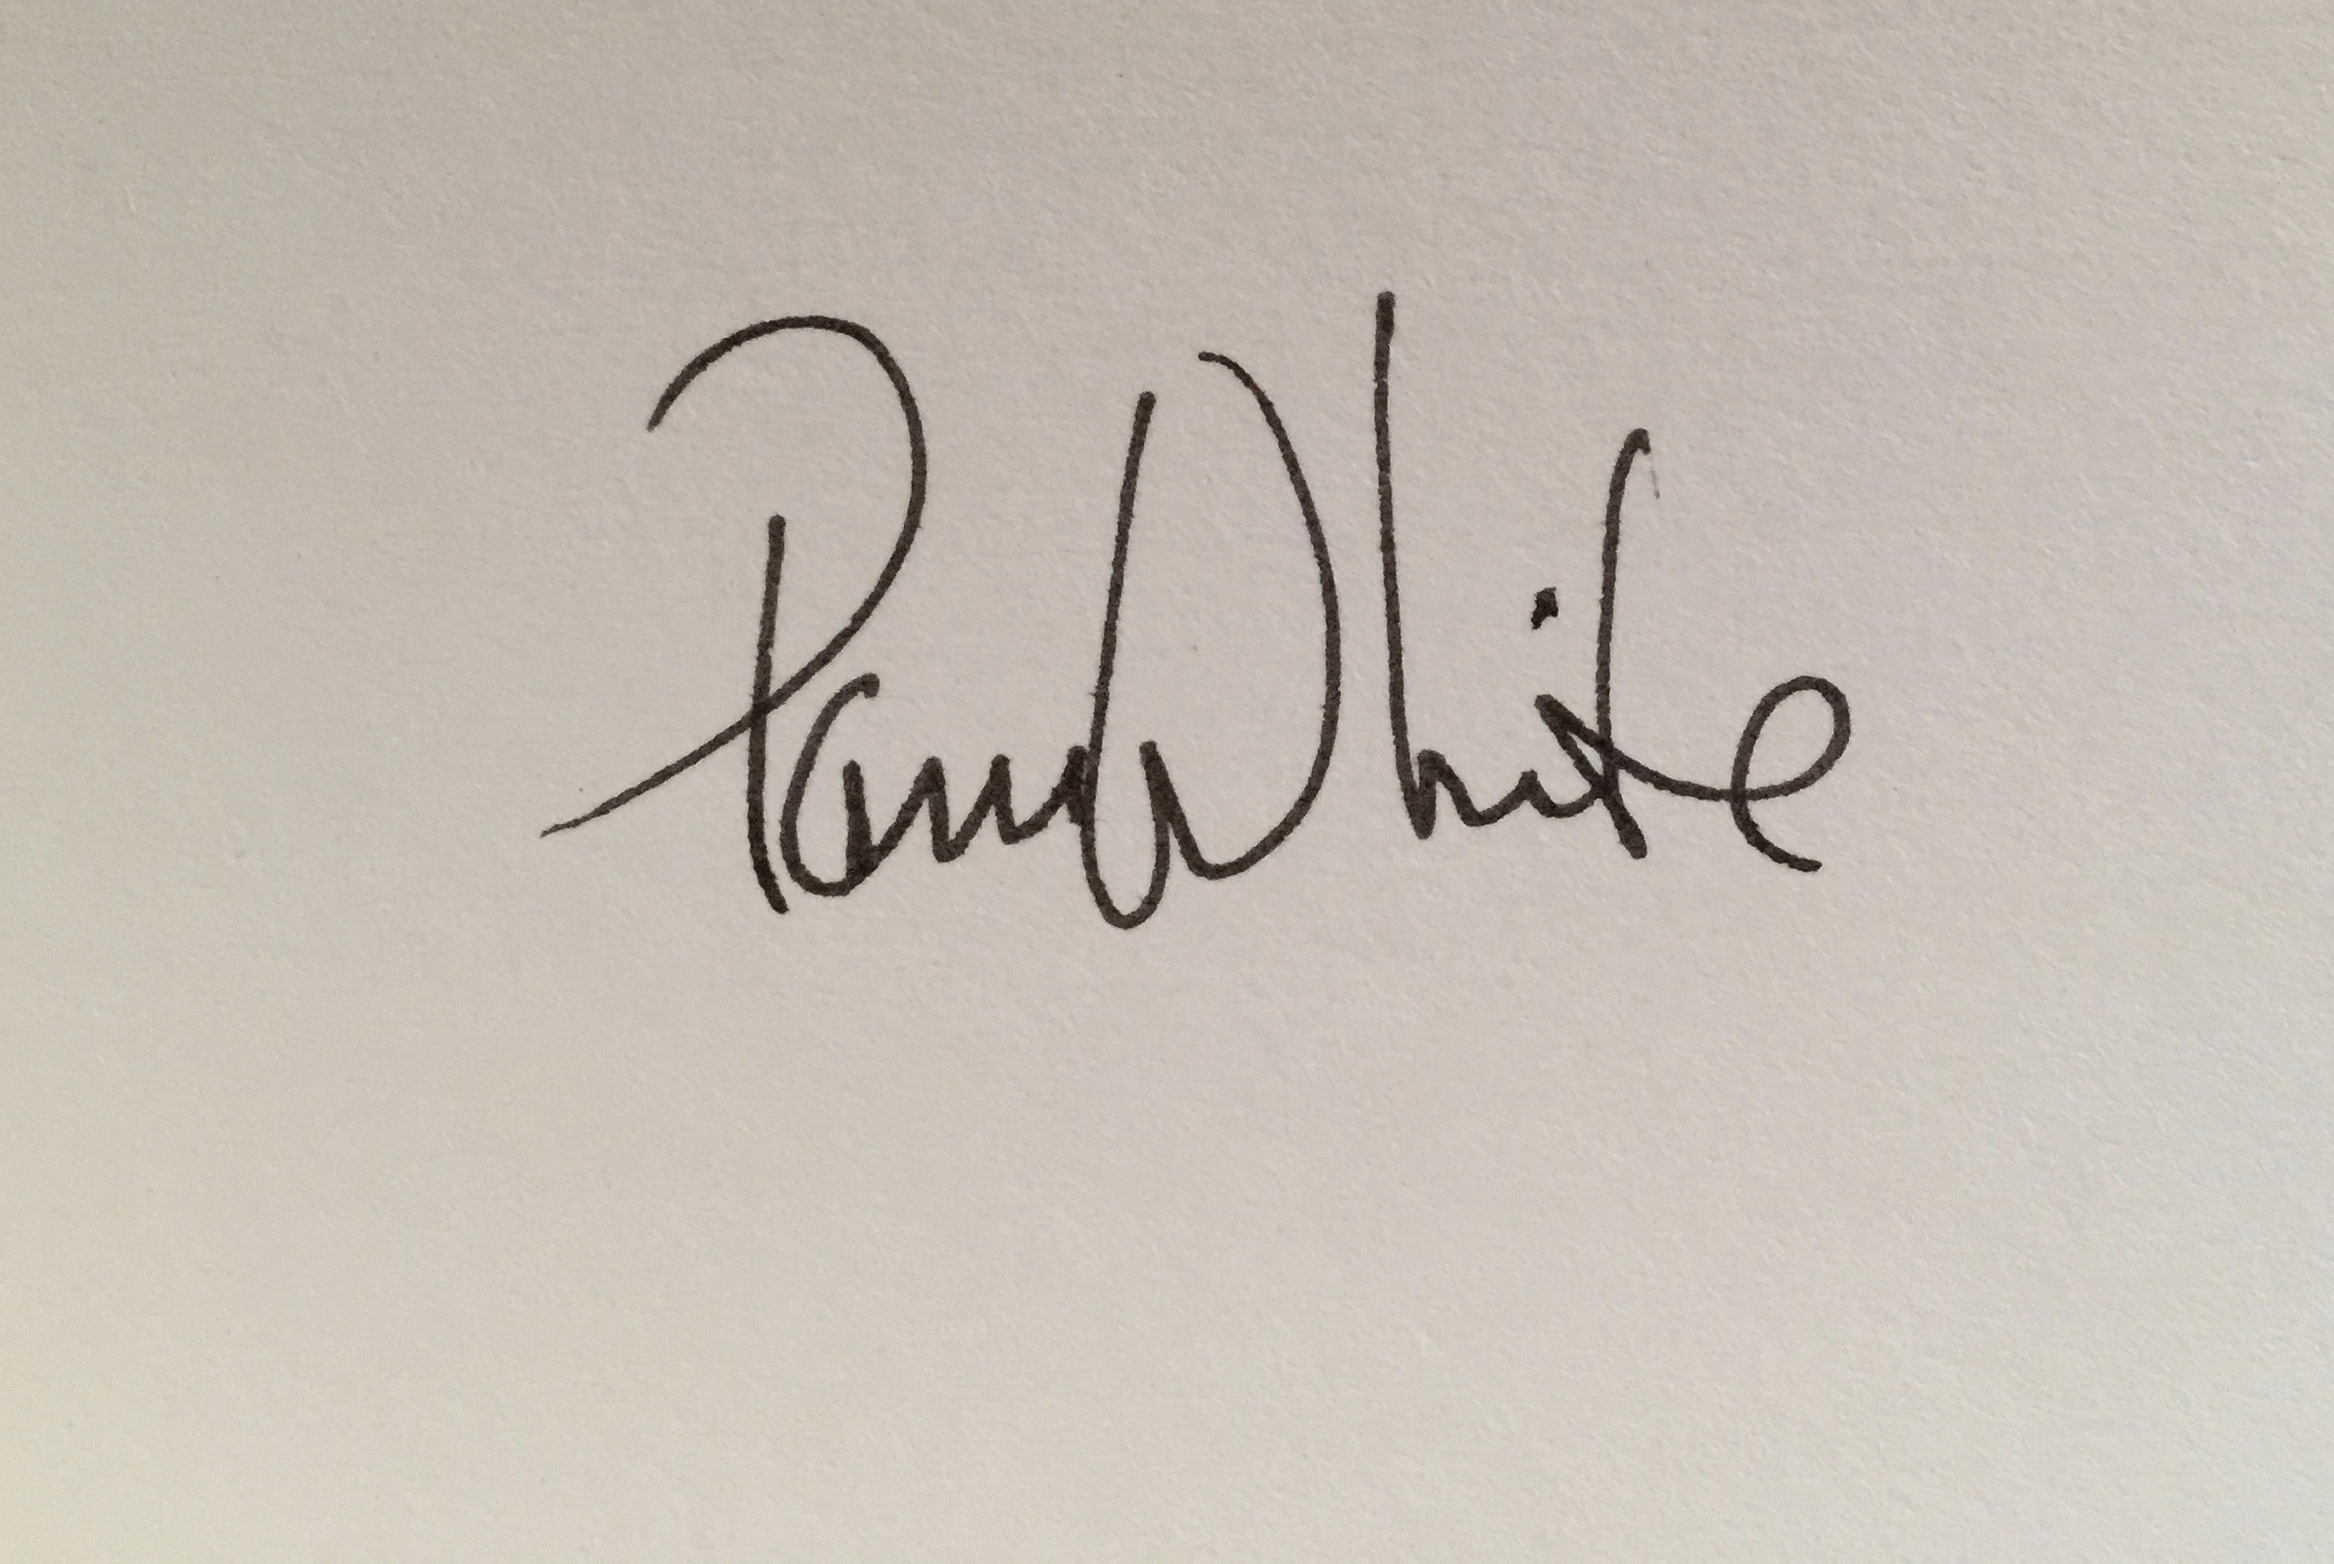 Pam White's Signature